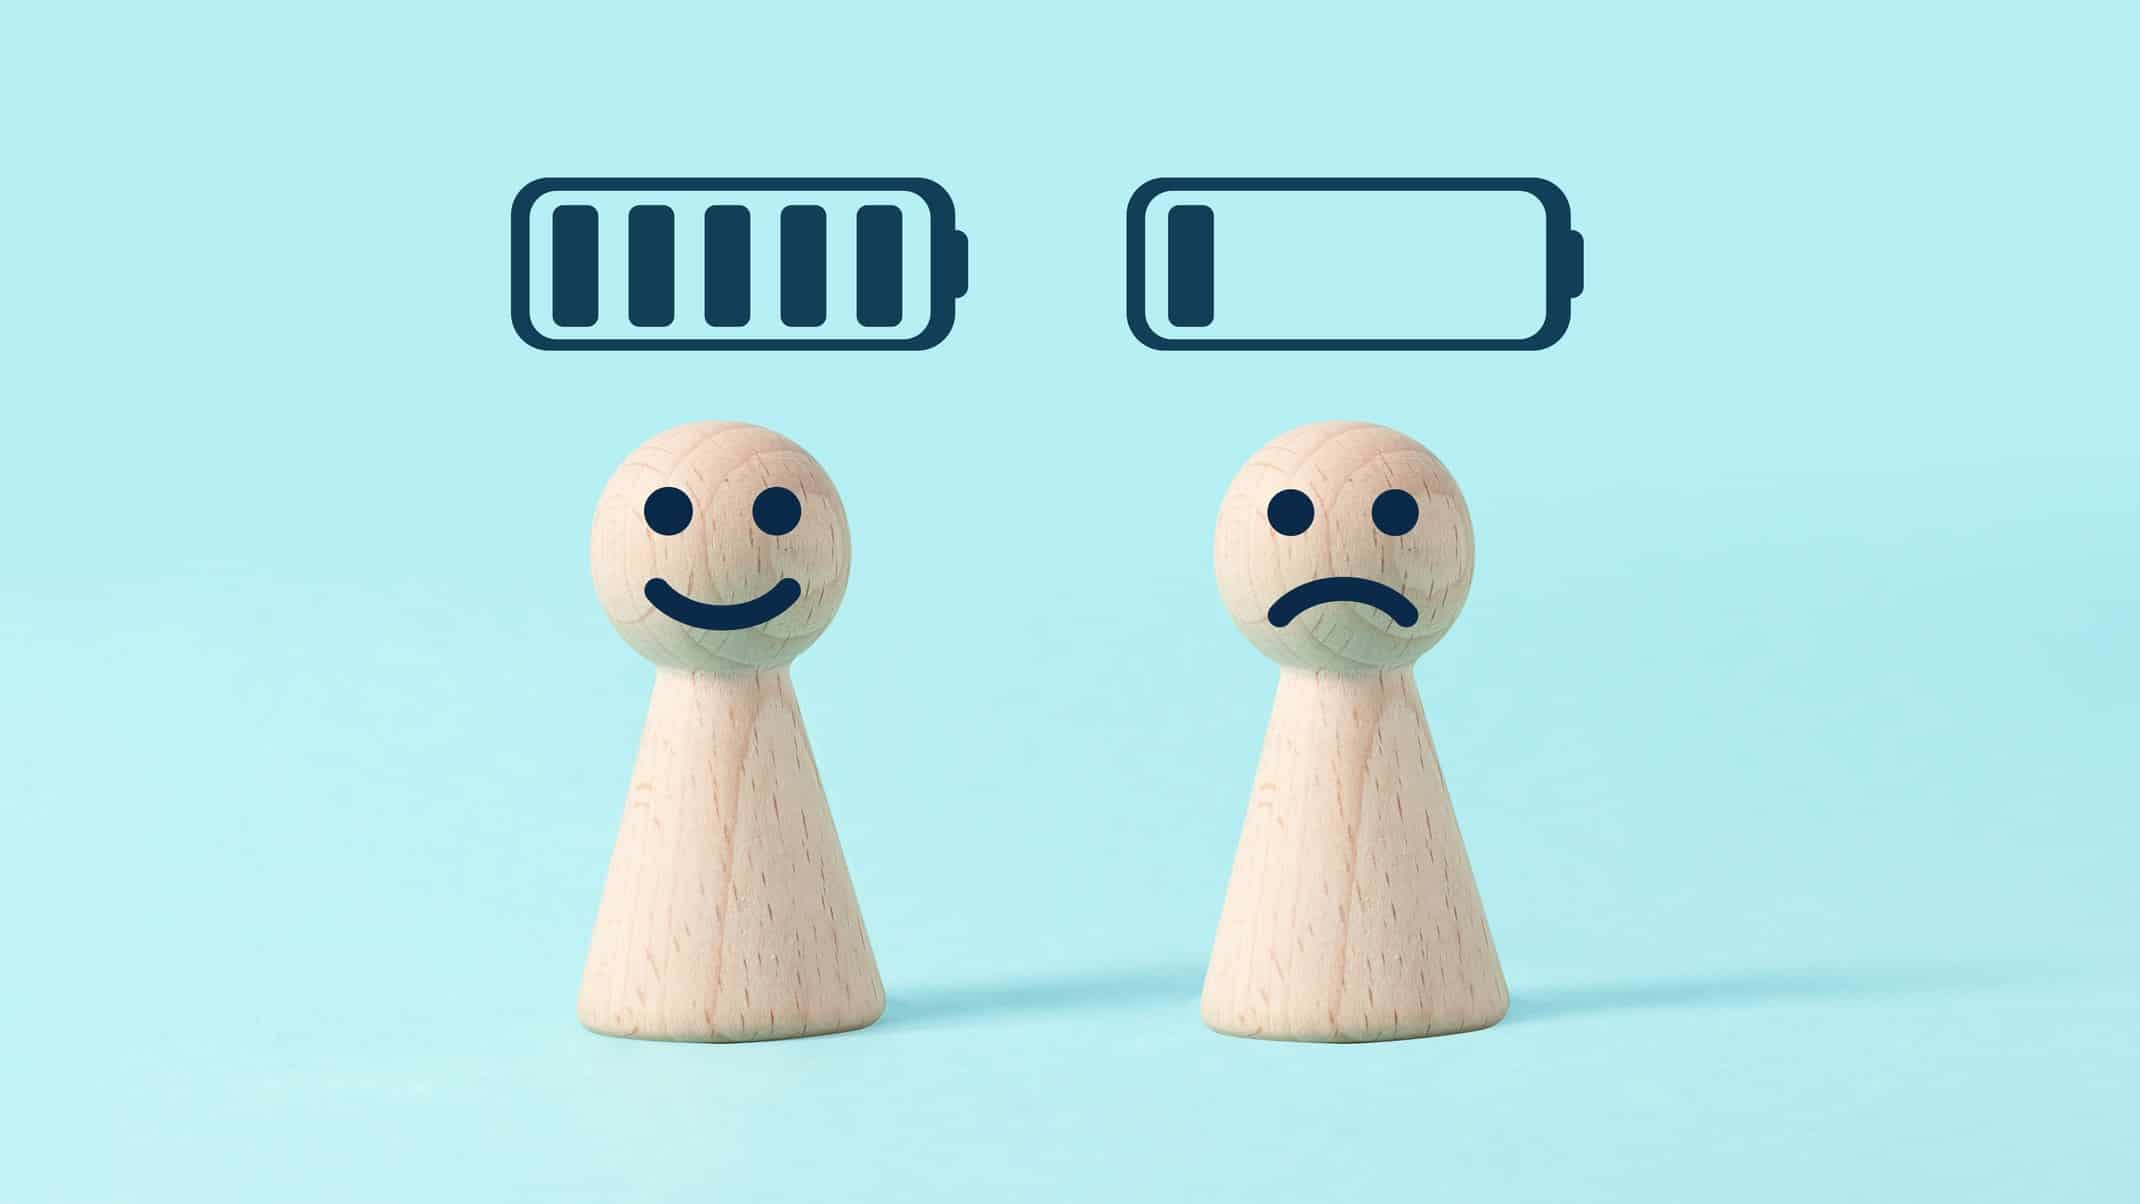 asx lithium shares represented by two little wooden peg dolls one with happy face below full battery icon, the other with sad face below empty battery icon